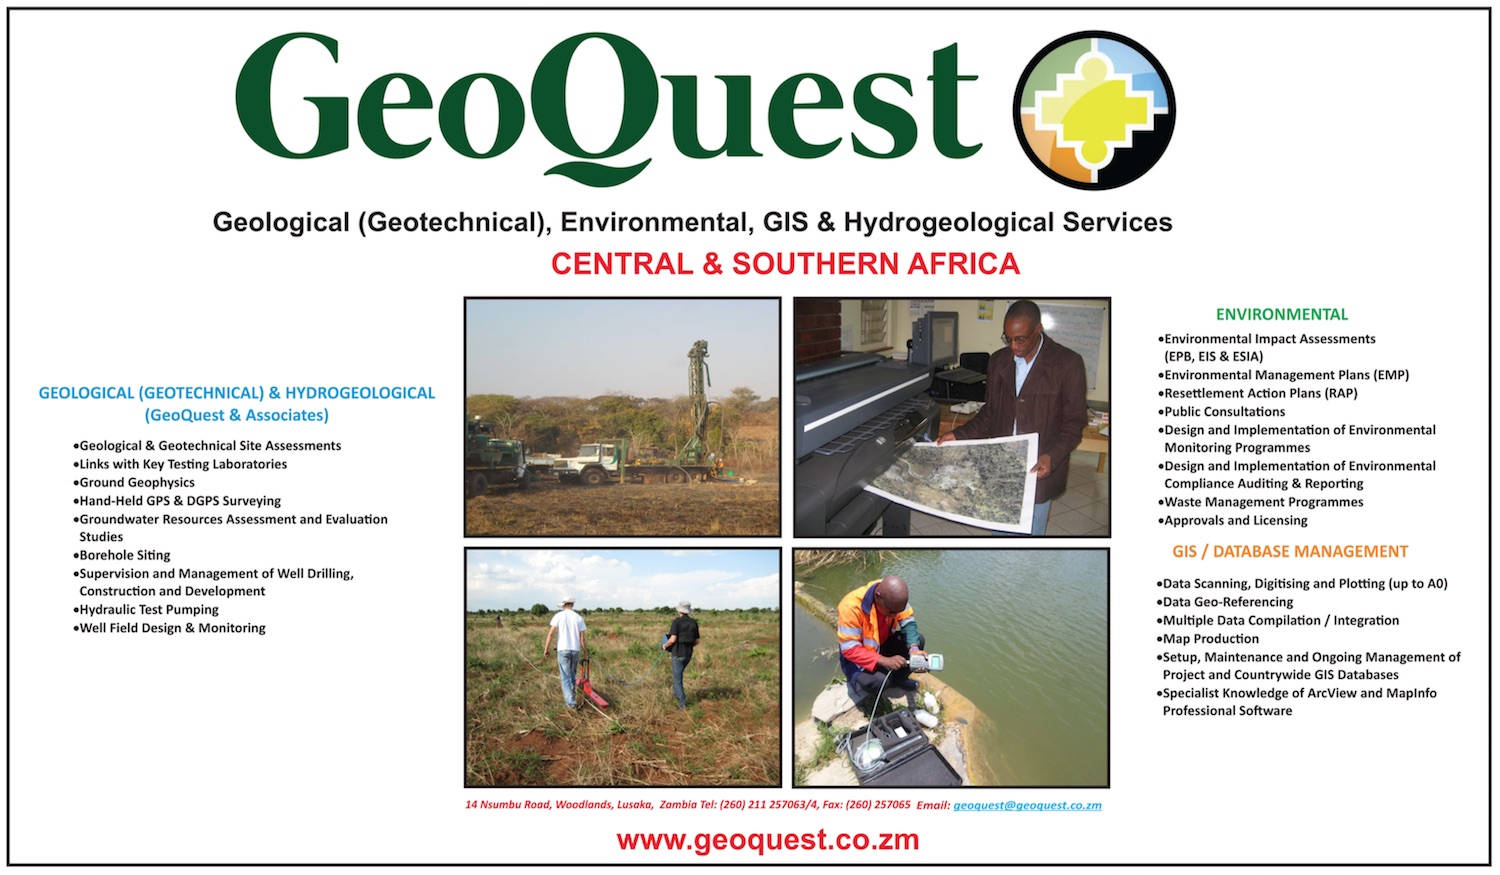 GeoQuest at a Glance